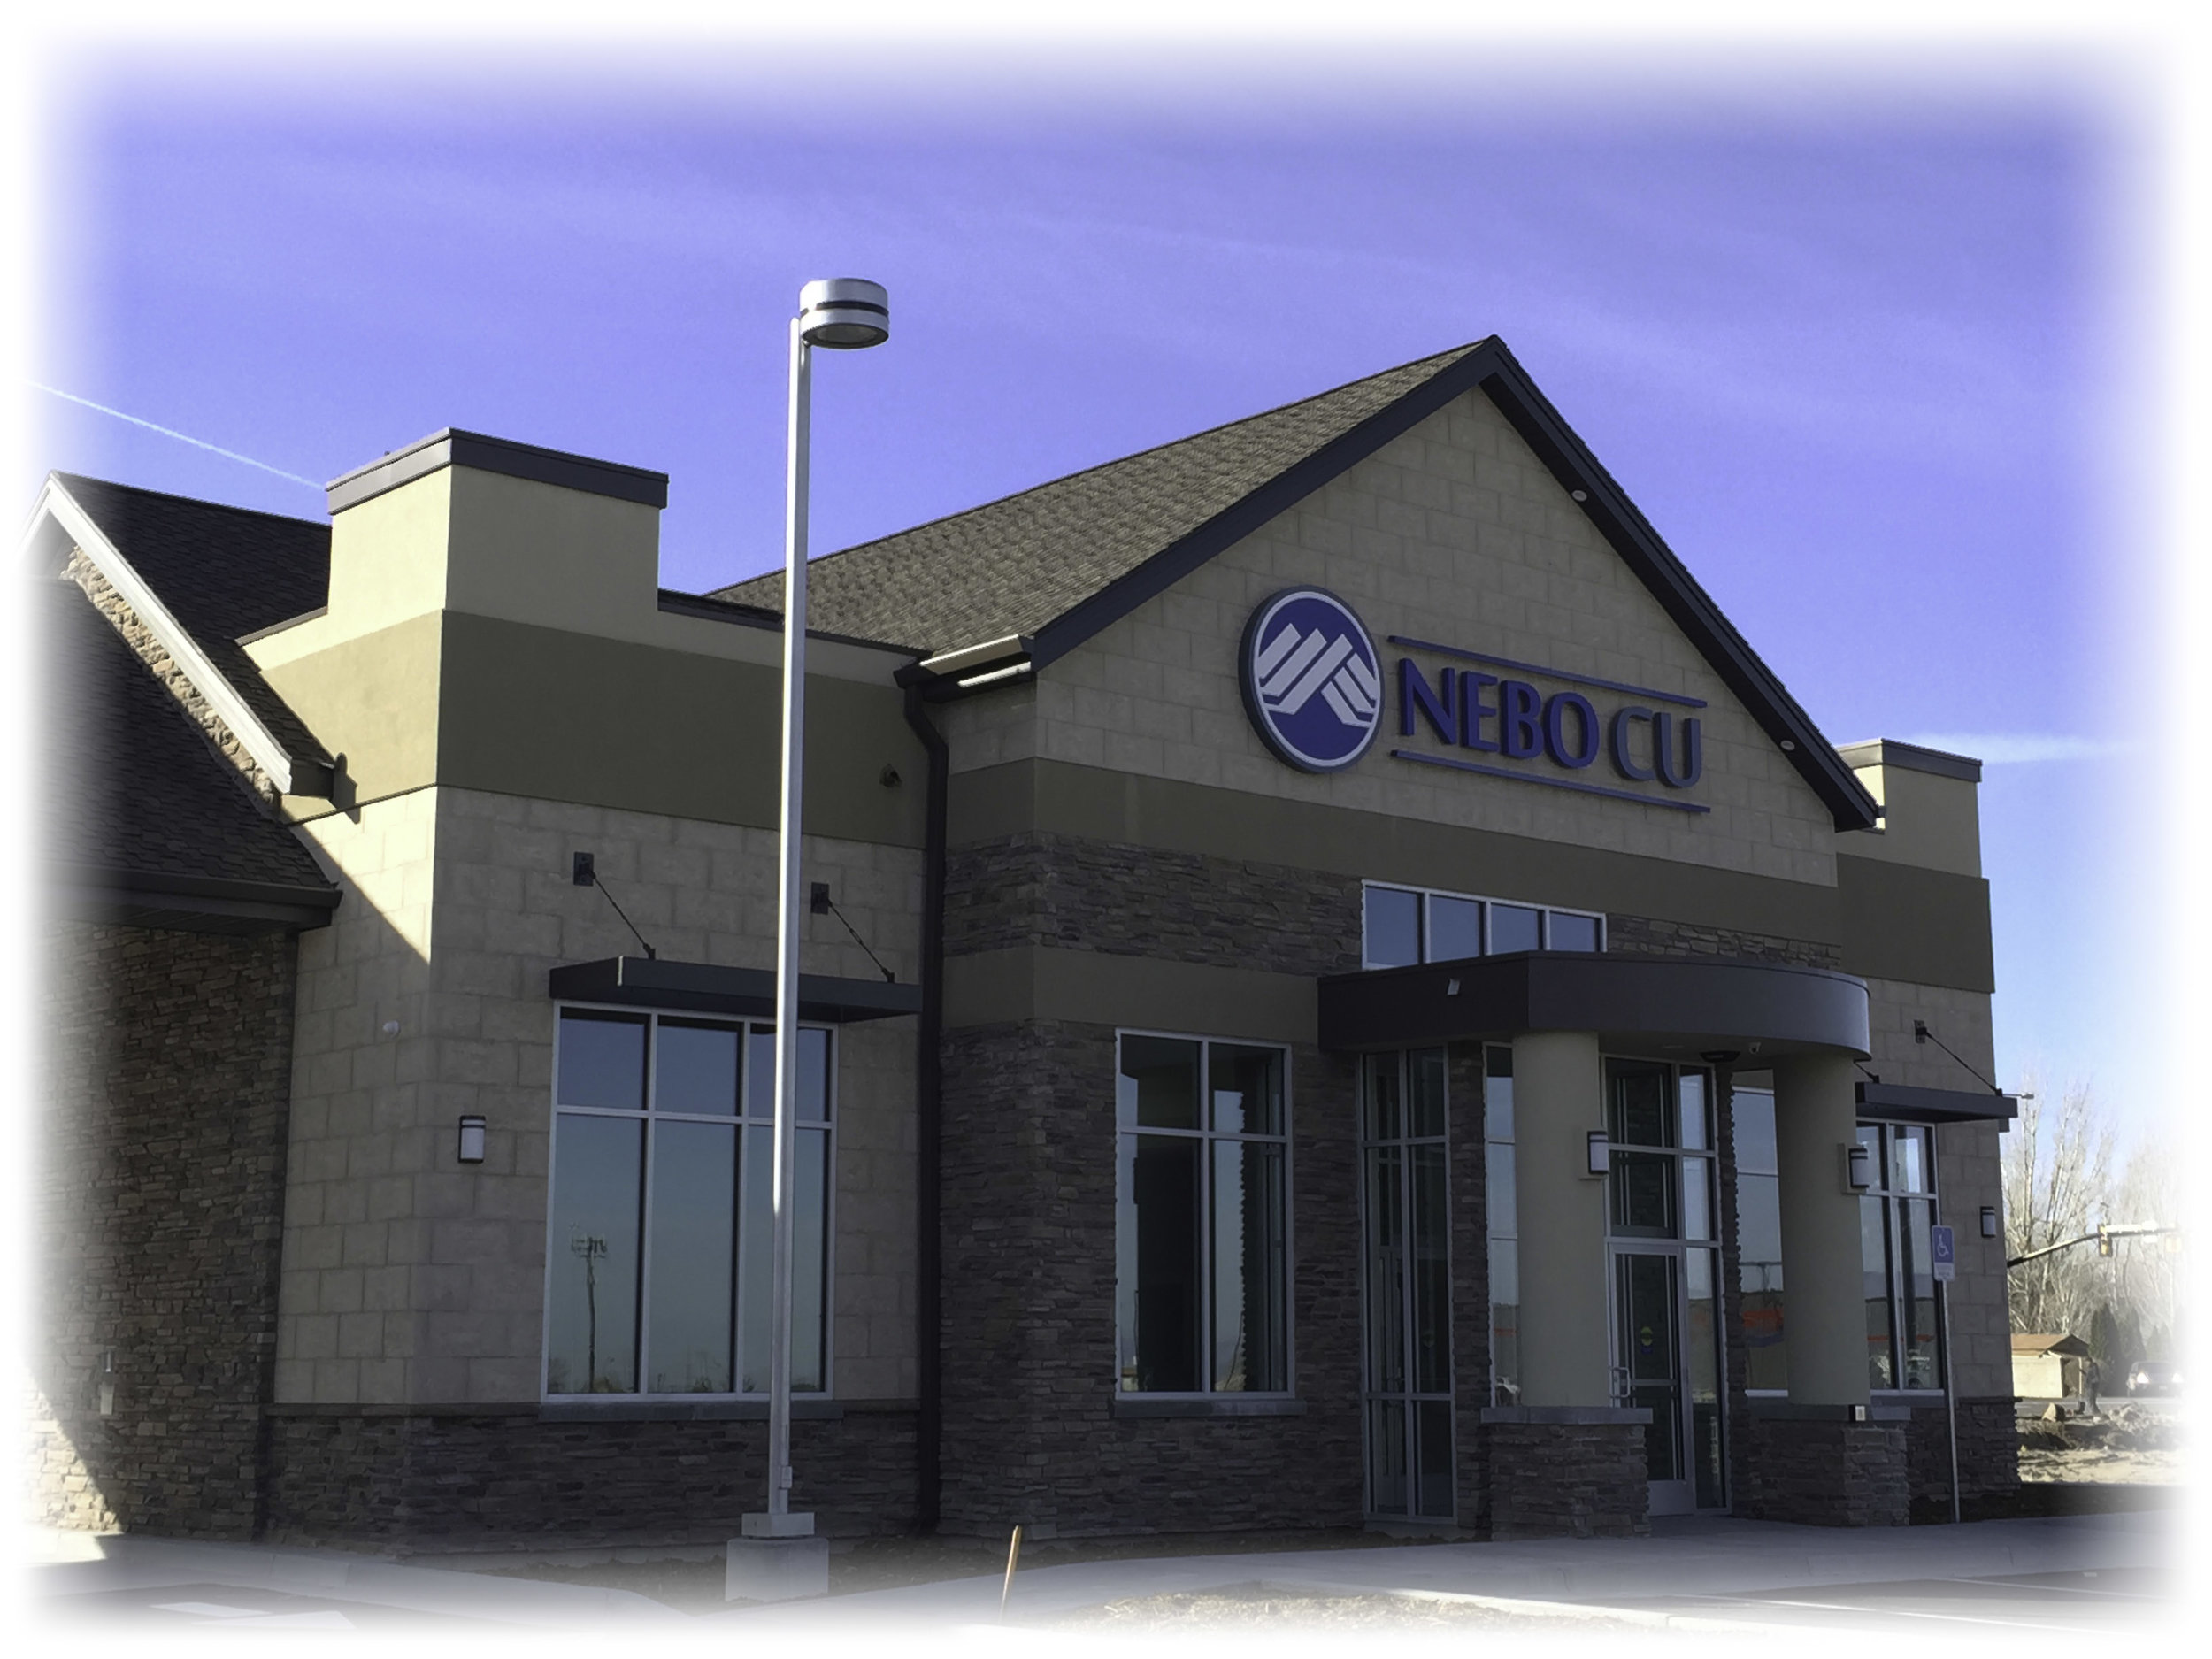 Nebo Credit Union Location